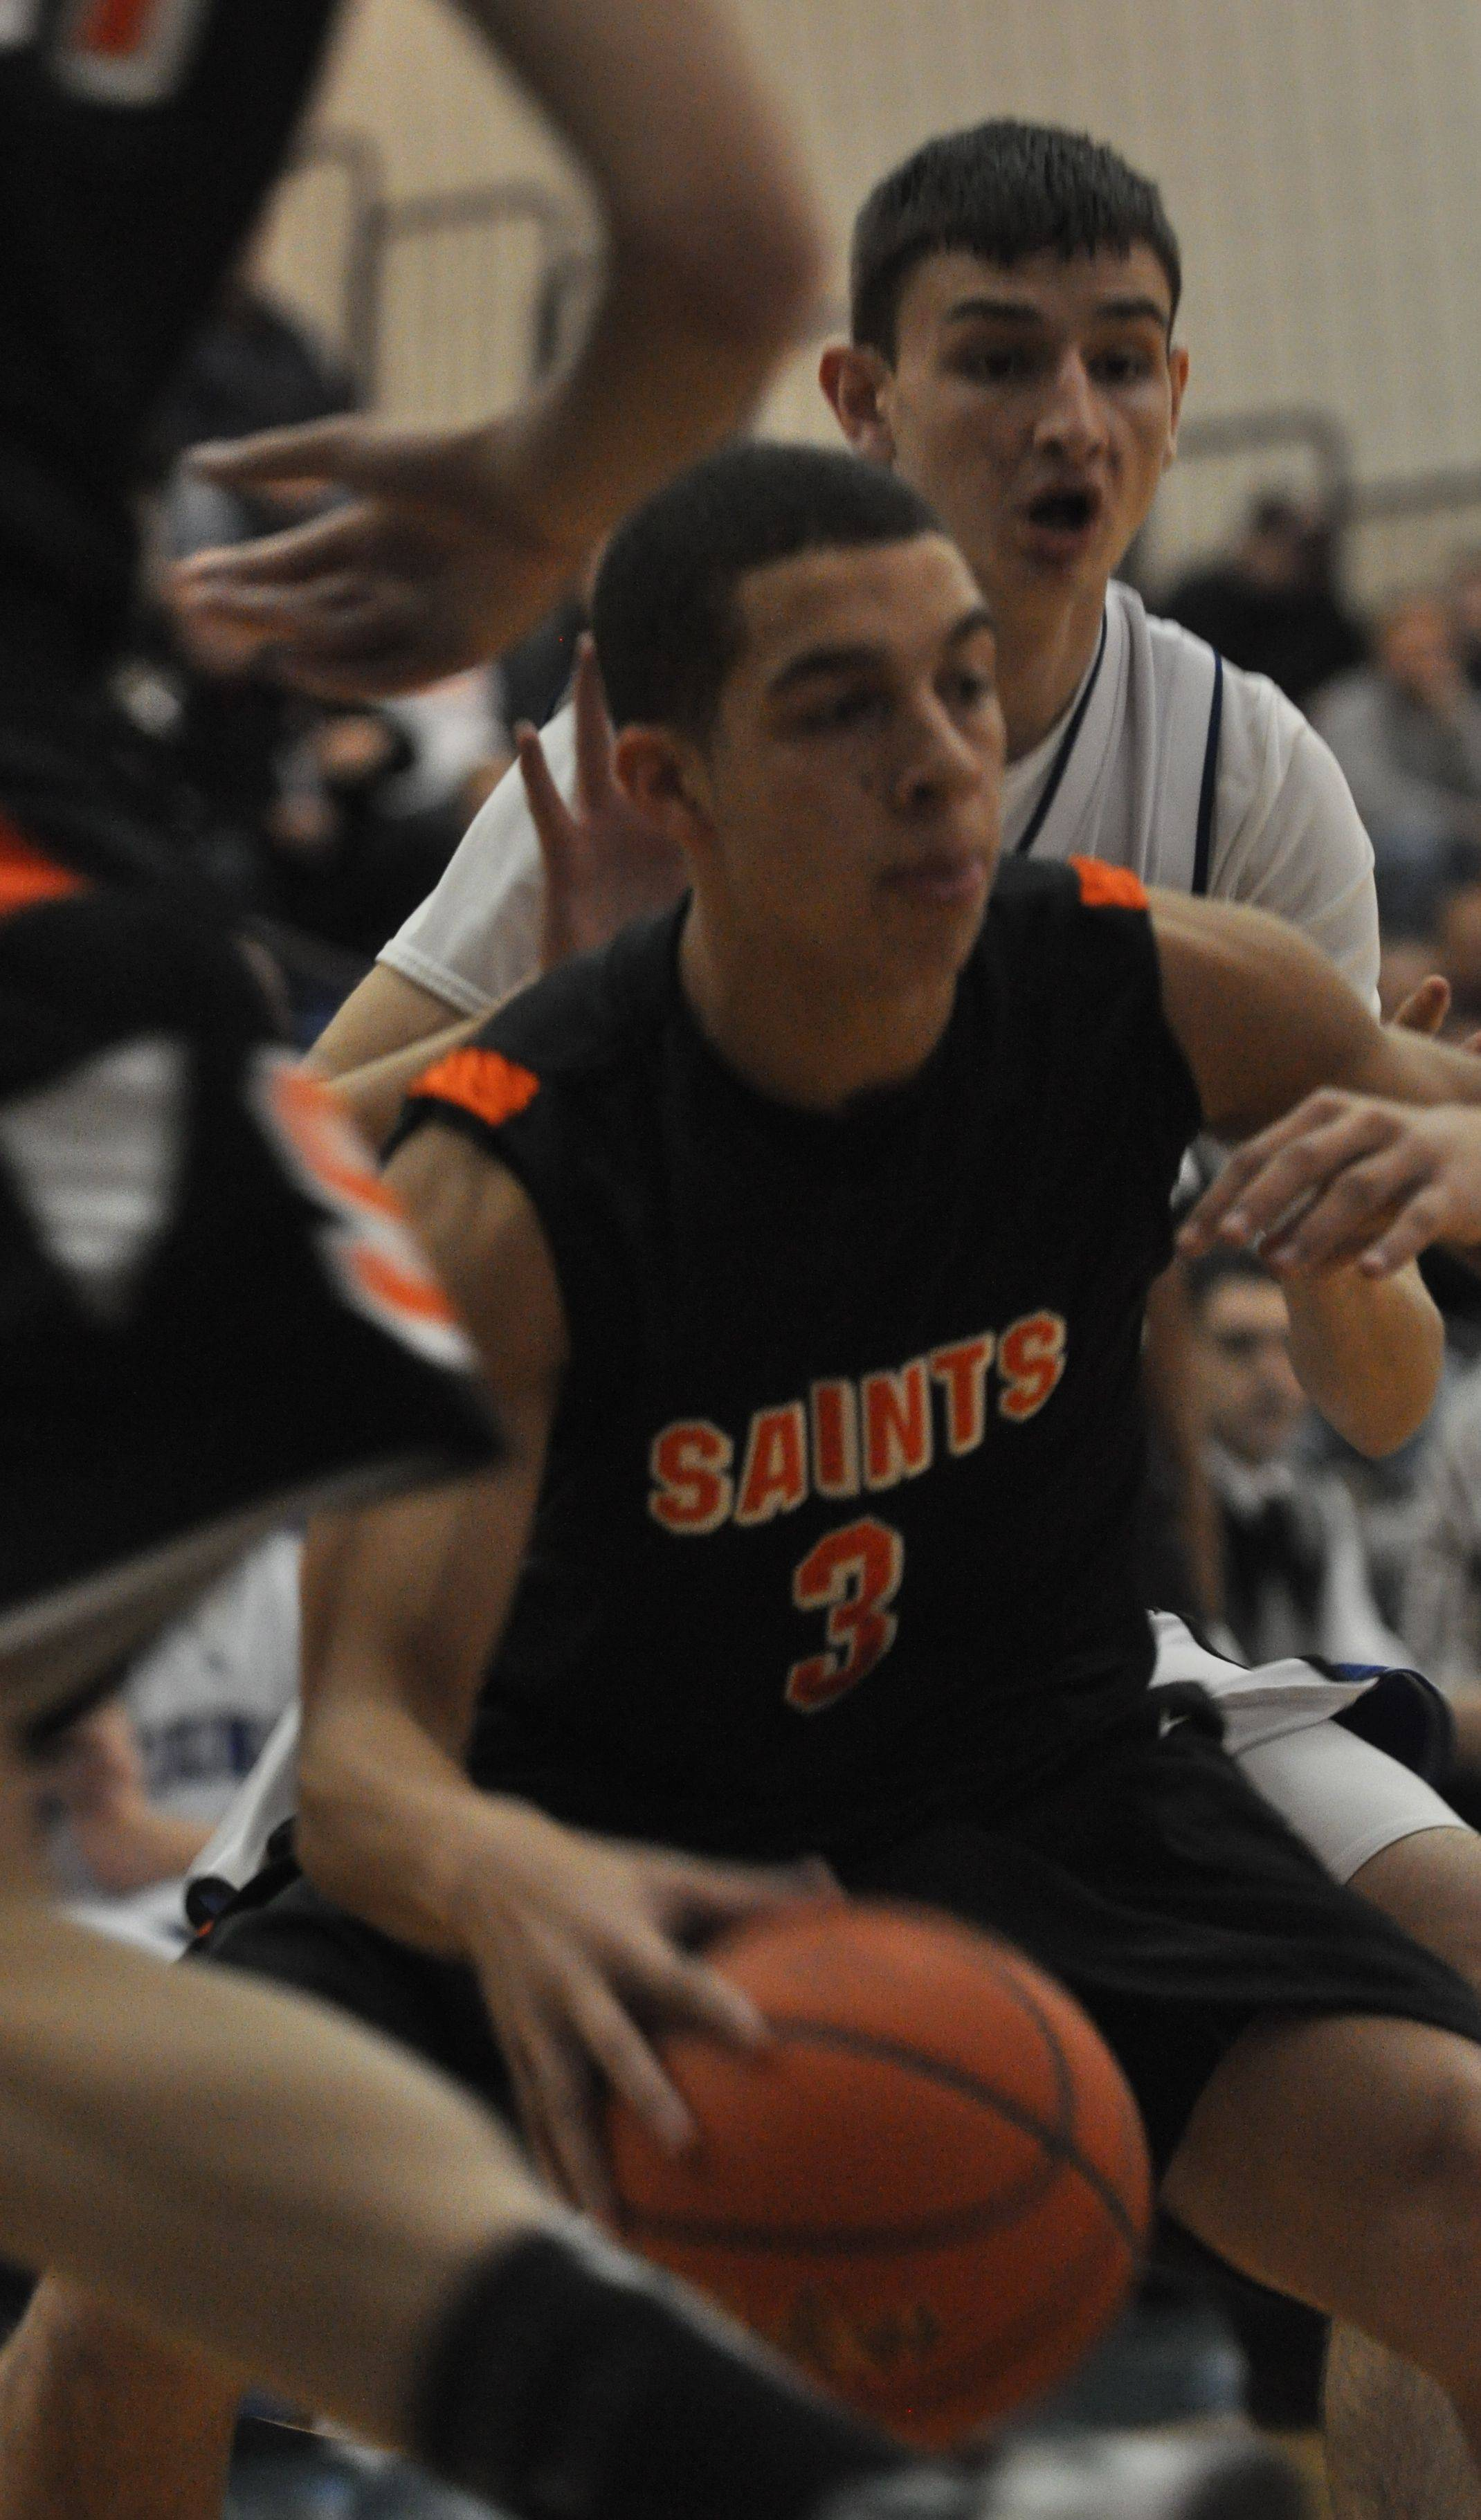 Images from the St. Charles East vs. Geneva boys basketball game Friday, January 7, 2011.